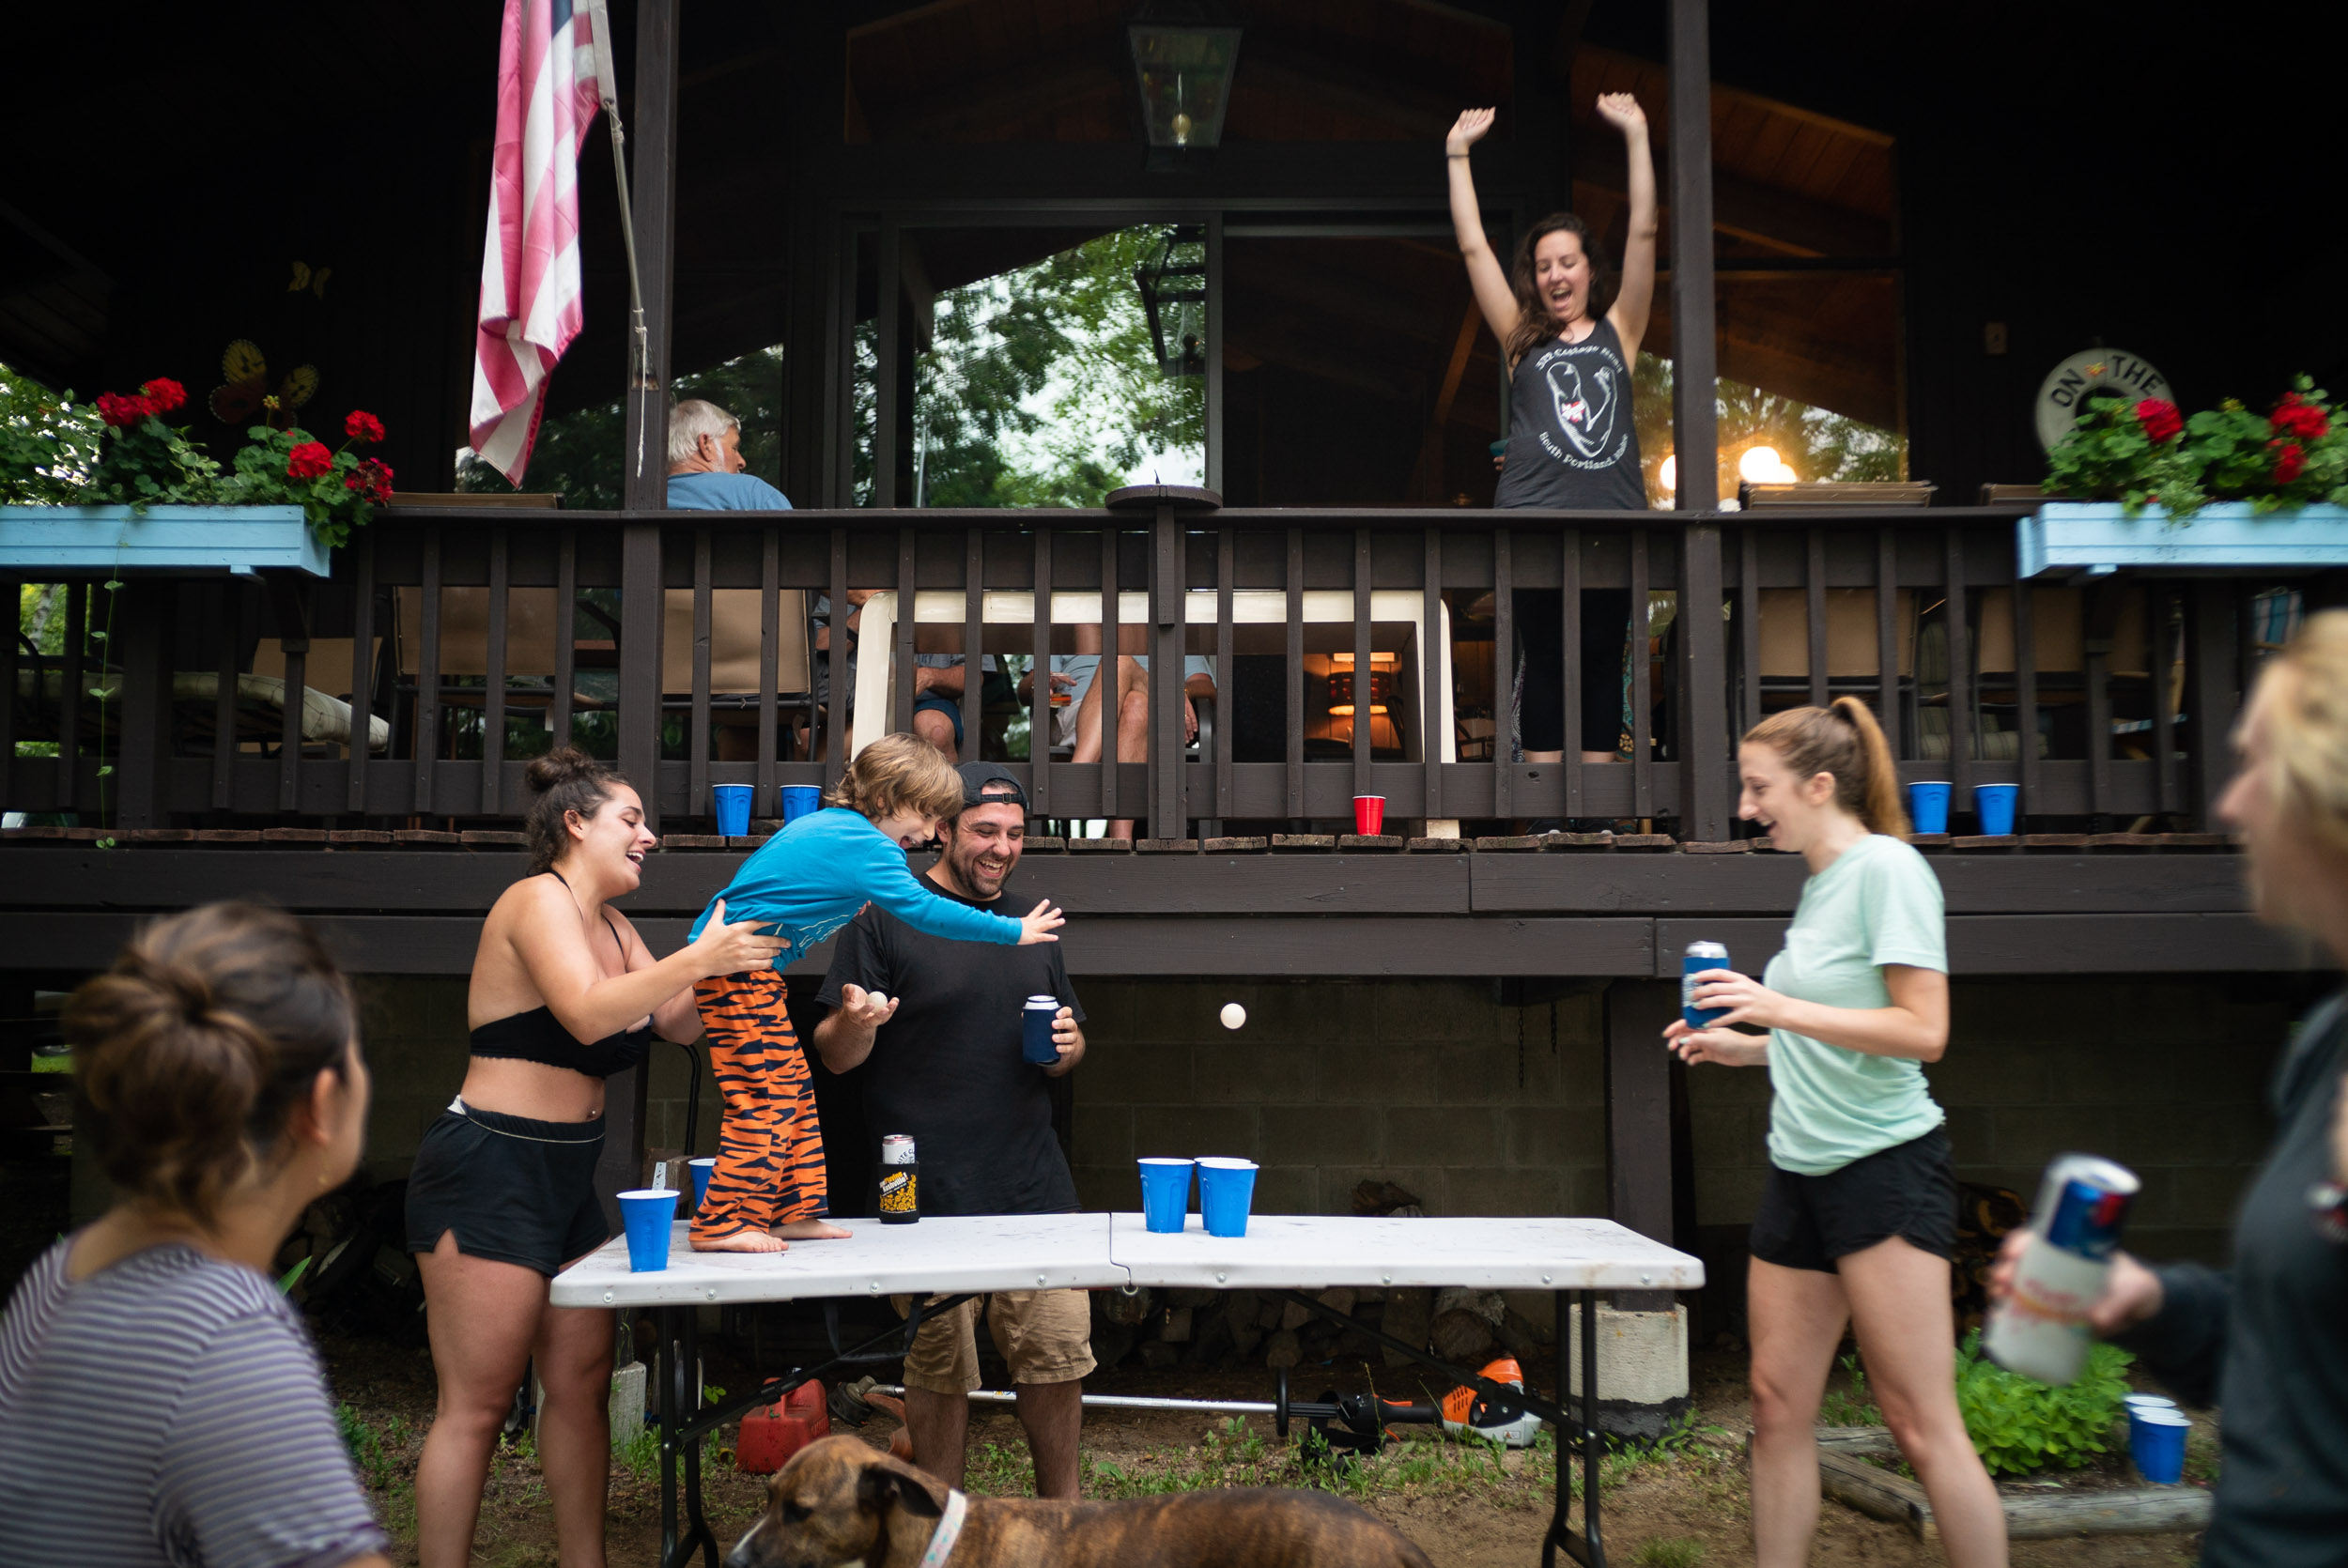 20190706_Summer_Adirondacks_195032-2_web